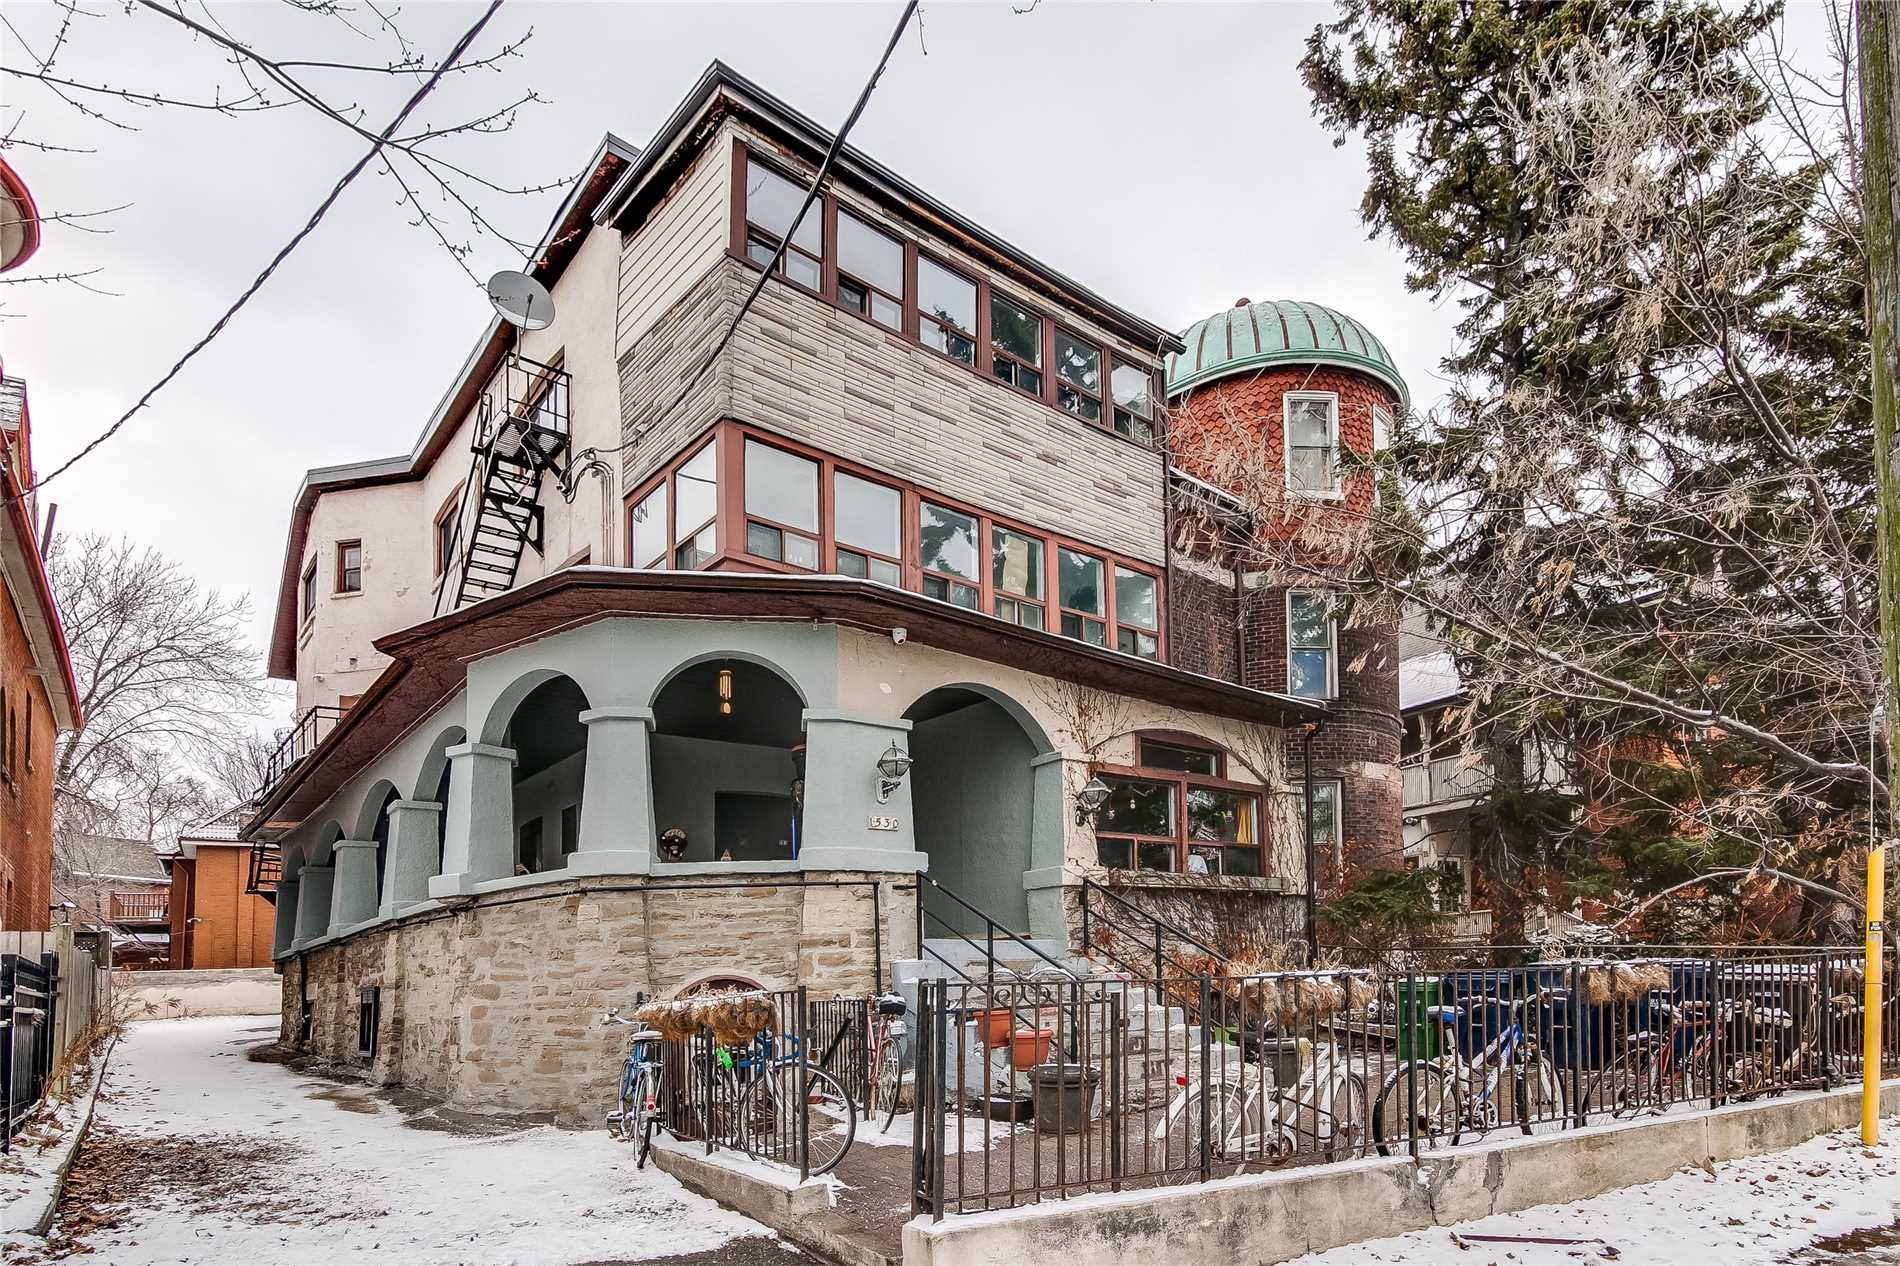 Spacious And Bright 2 Bedroom Unit + Den; Den Can Be Utilized As Third Bedroom. Recently Updated; Finished Floors And Freshly Painted Throughout; Well Maintained. Ttc At Your Front Door! Steps To Queen St. W & Roncesvalles. Character Building With Views Of The Lake. Do Not Miss Out!